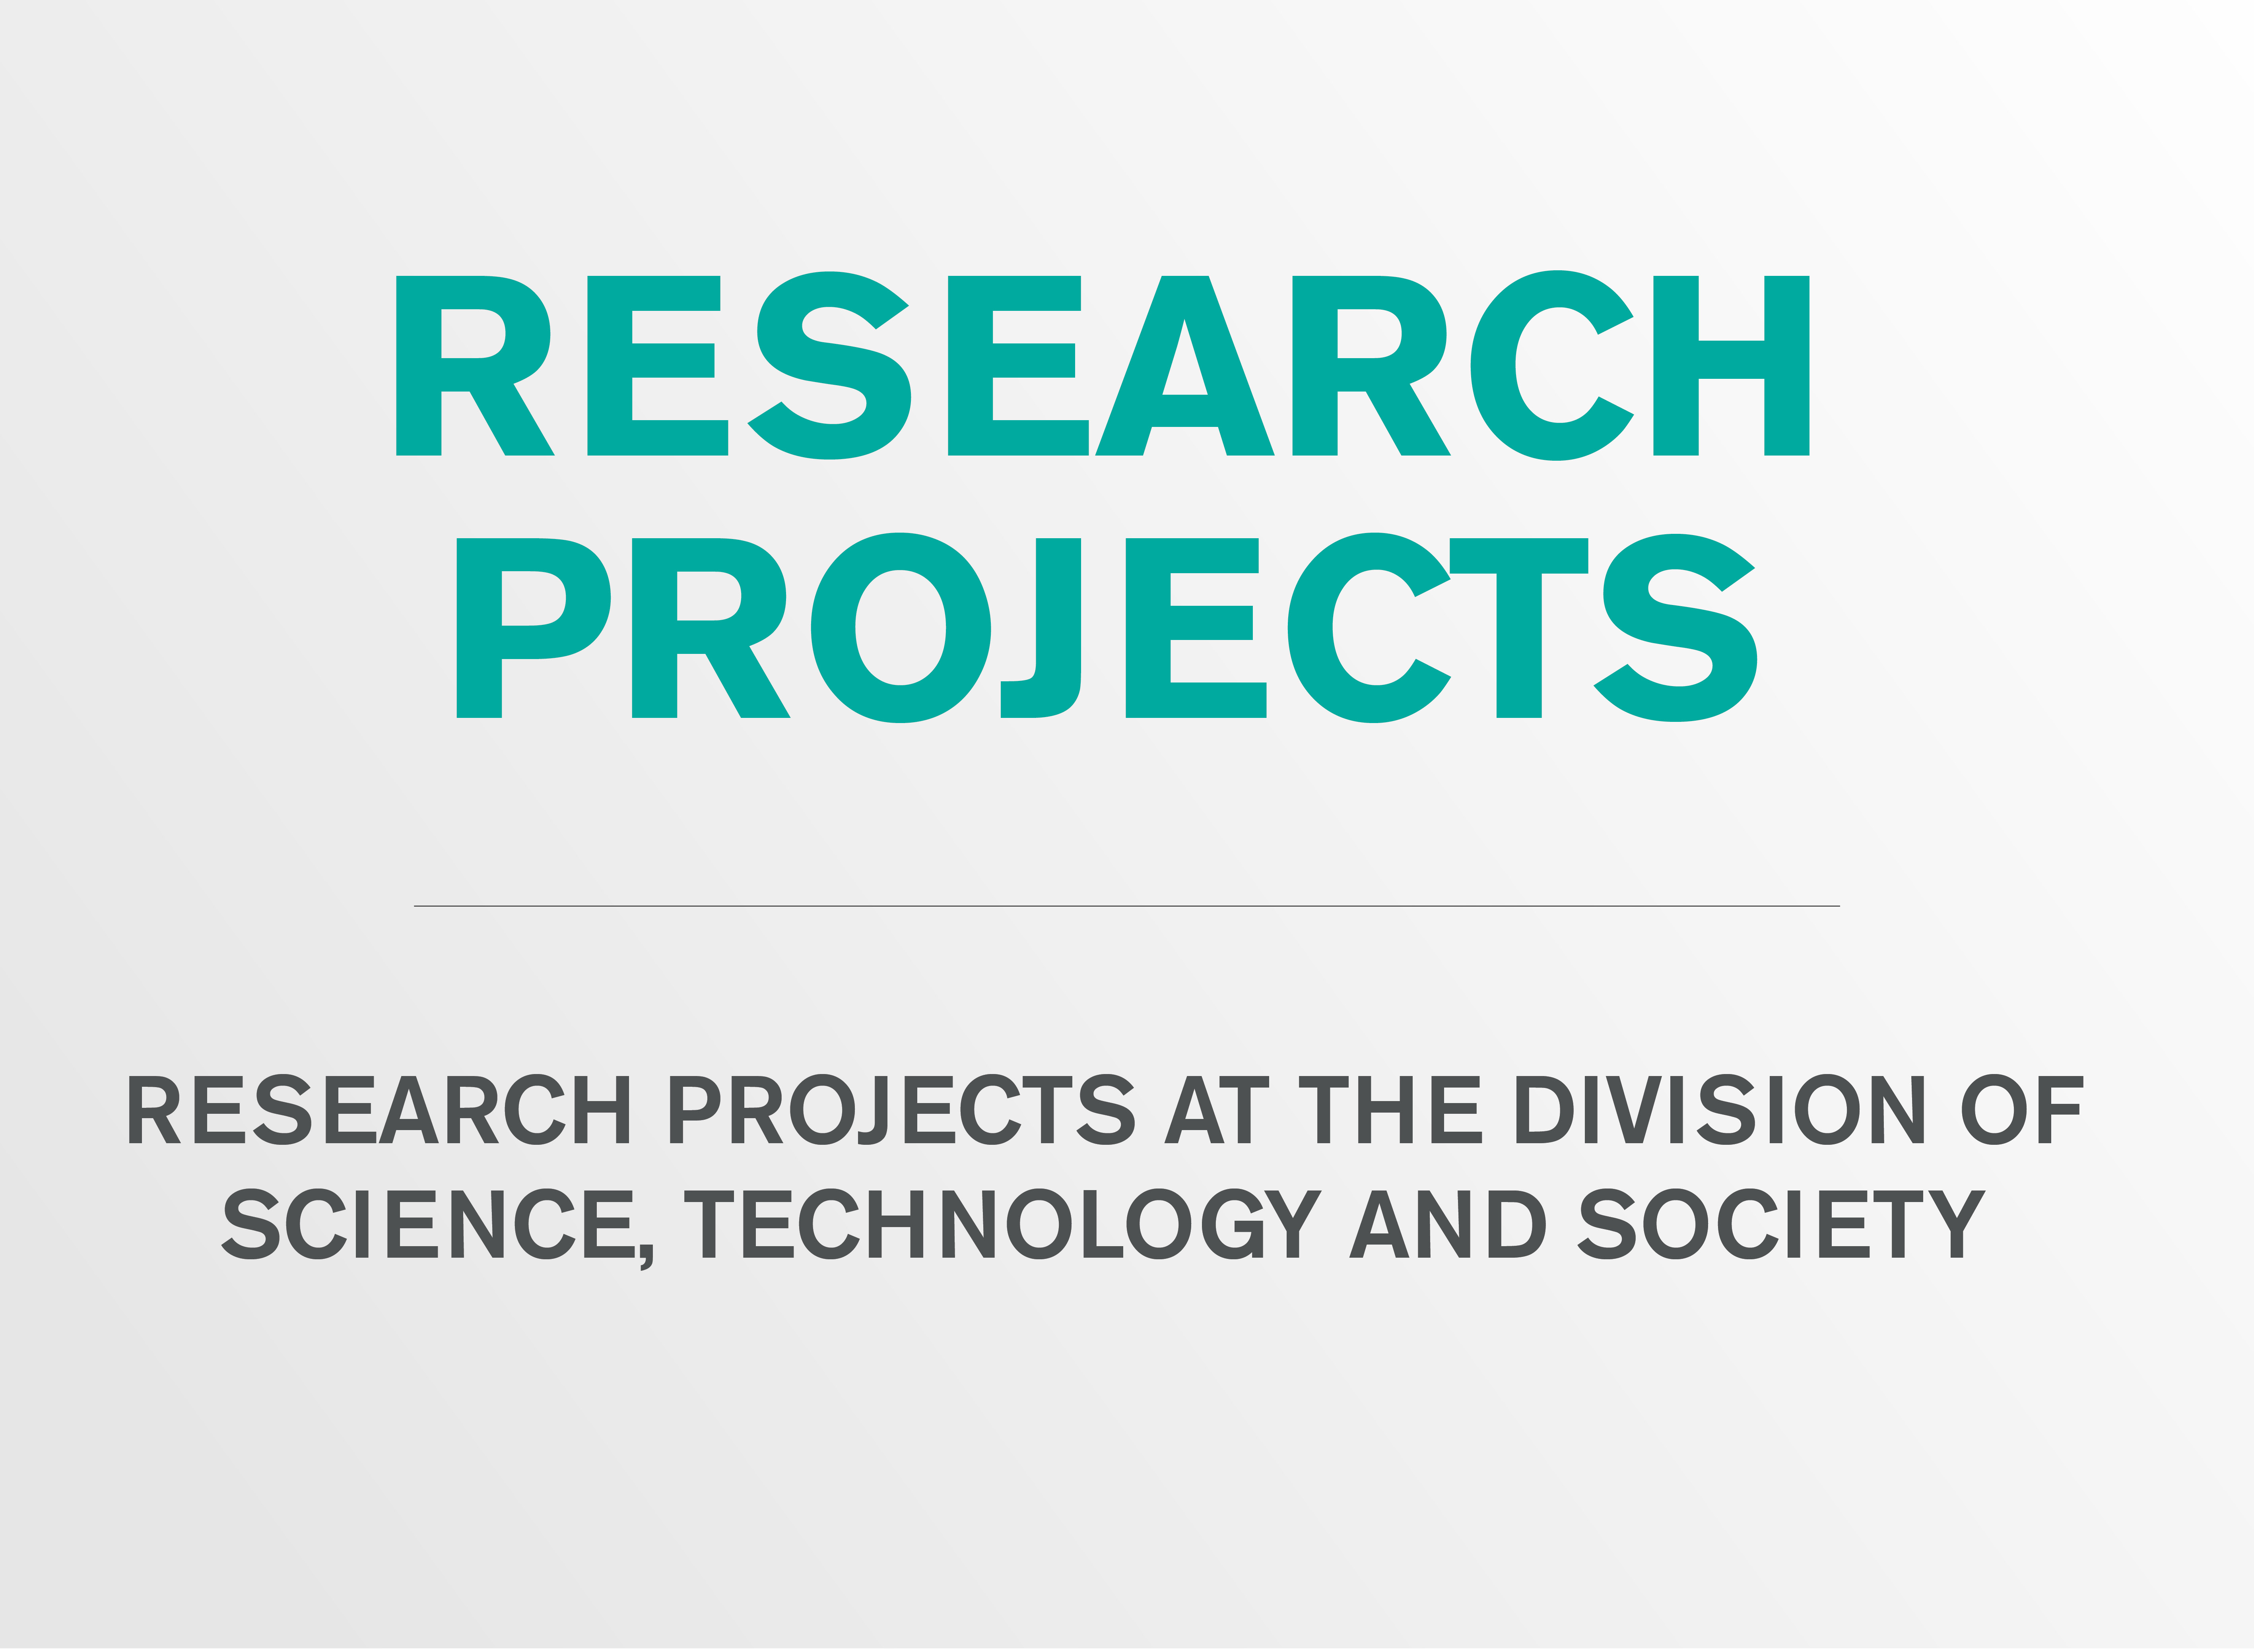 Research projects at the division of Science, Technology and Society.